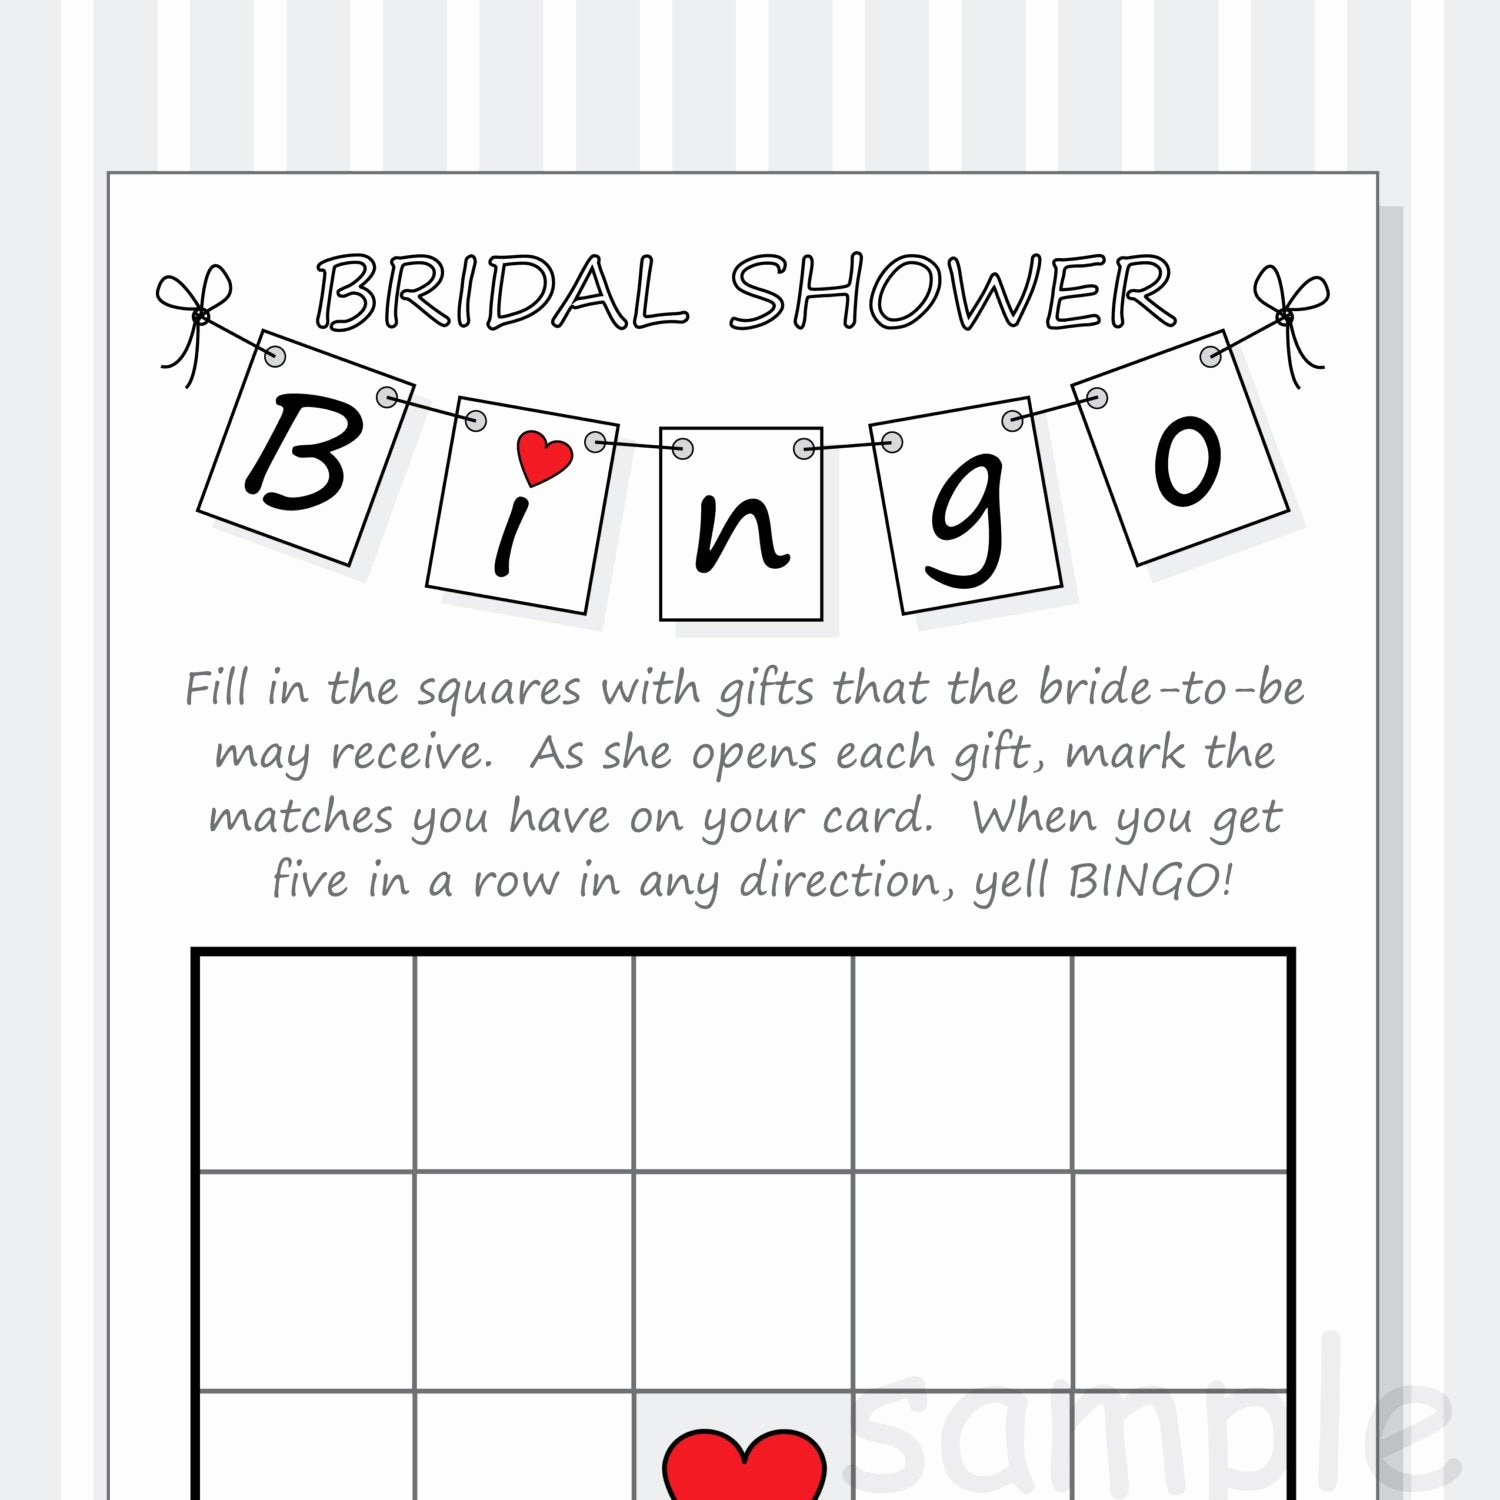 Bridal Shower Bingo Template Free Lovely Diy Bridal Shower Bingo Printable Cards Pennant Design Red